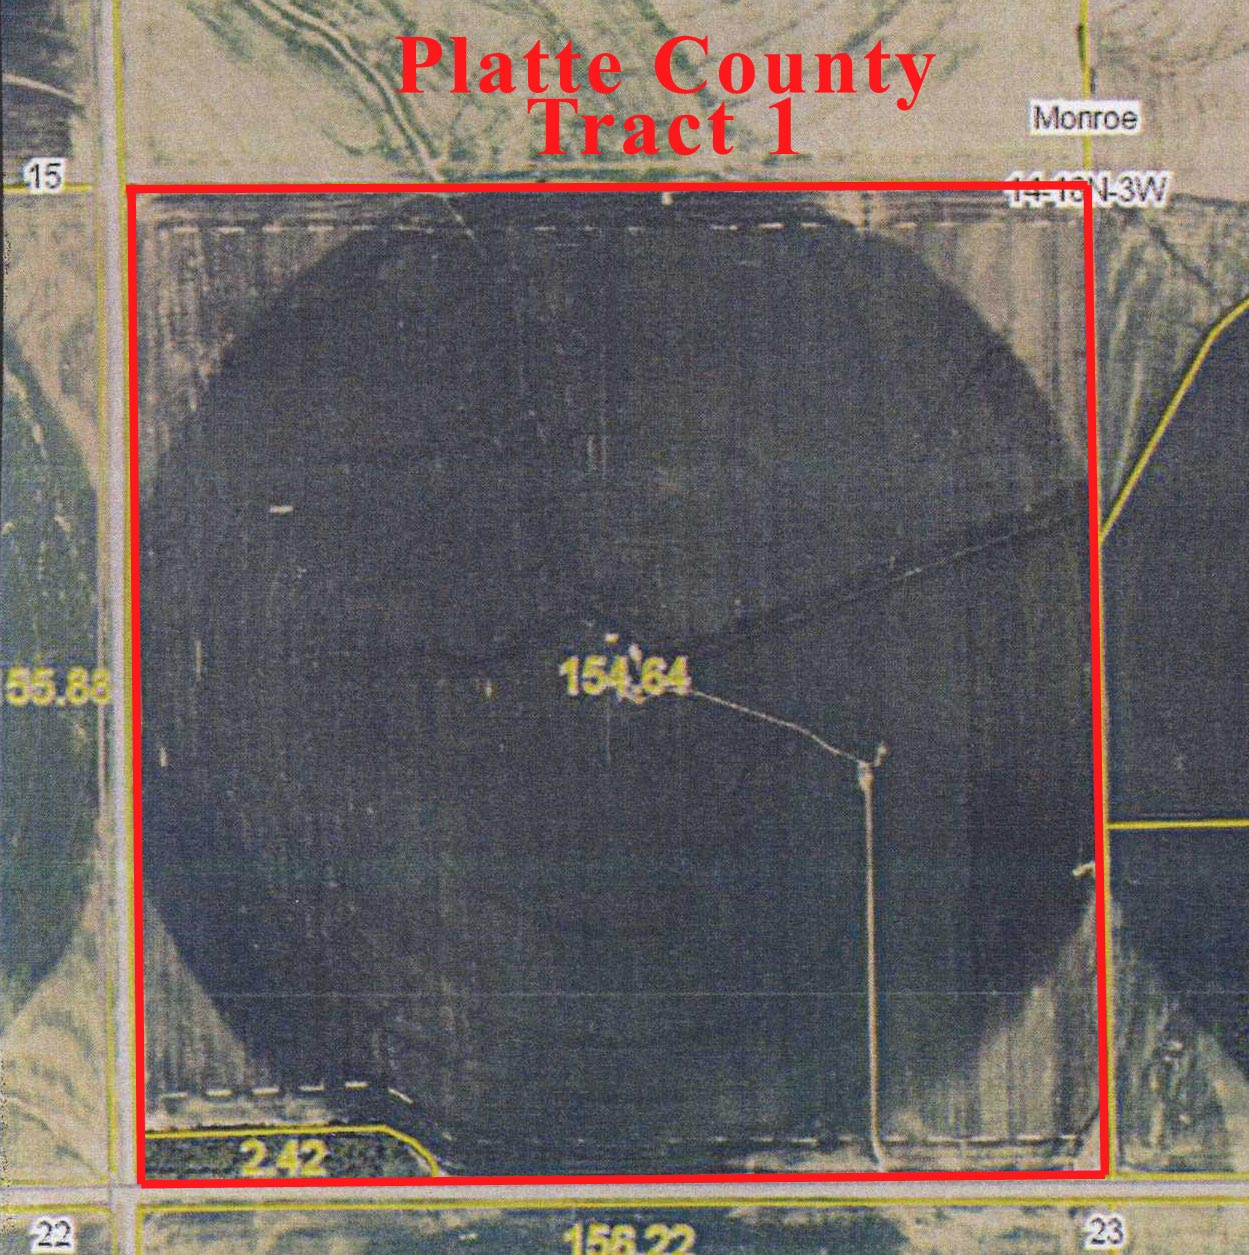 Aerial-Tract-1.jpg